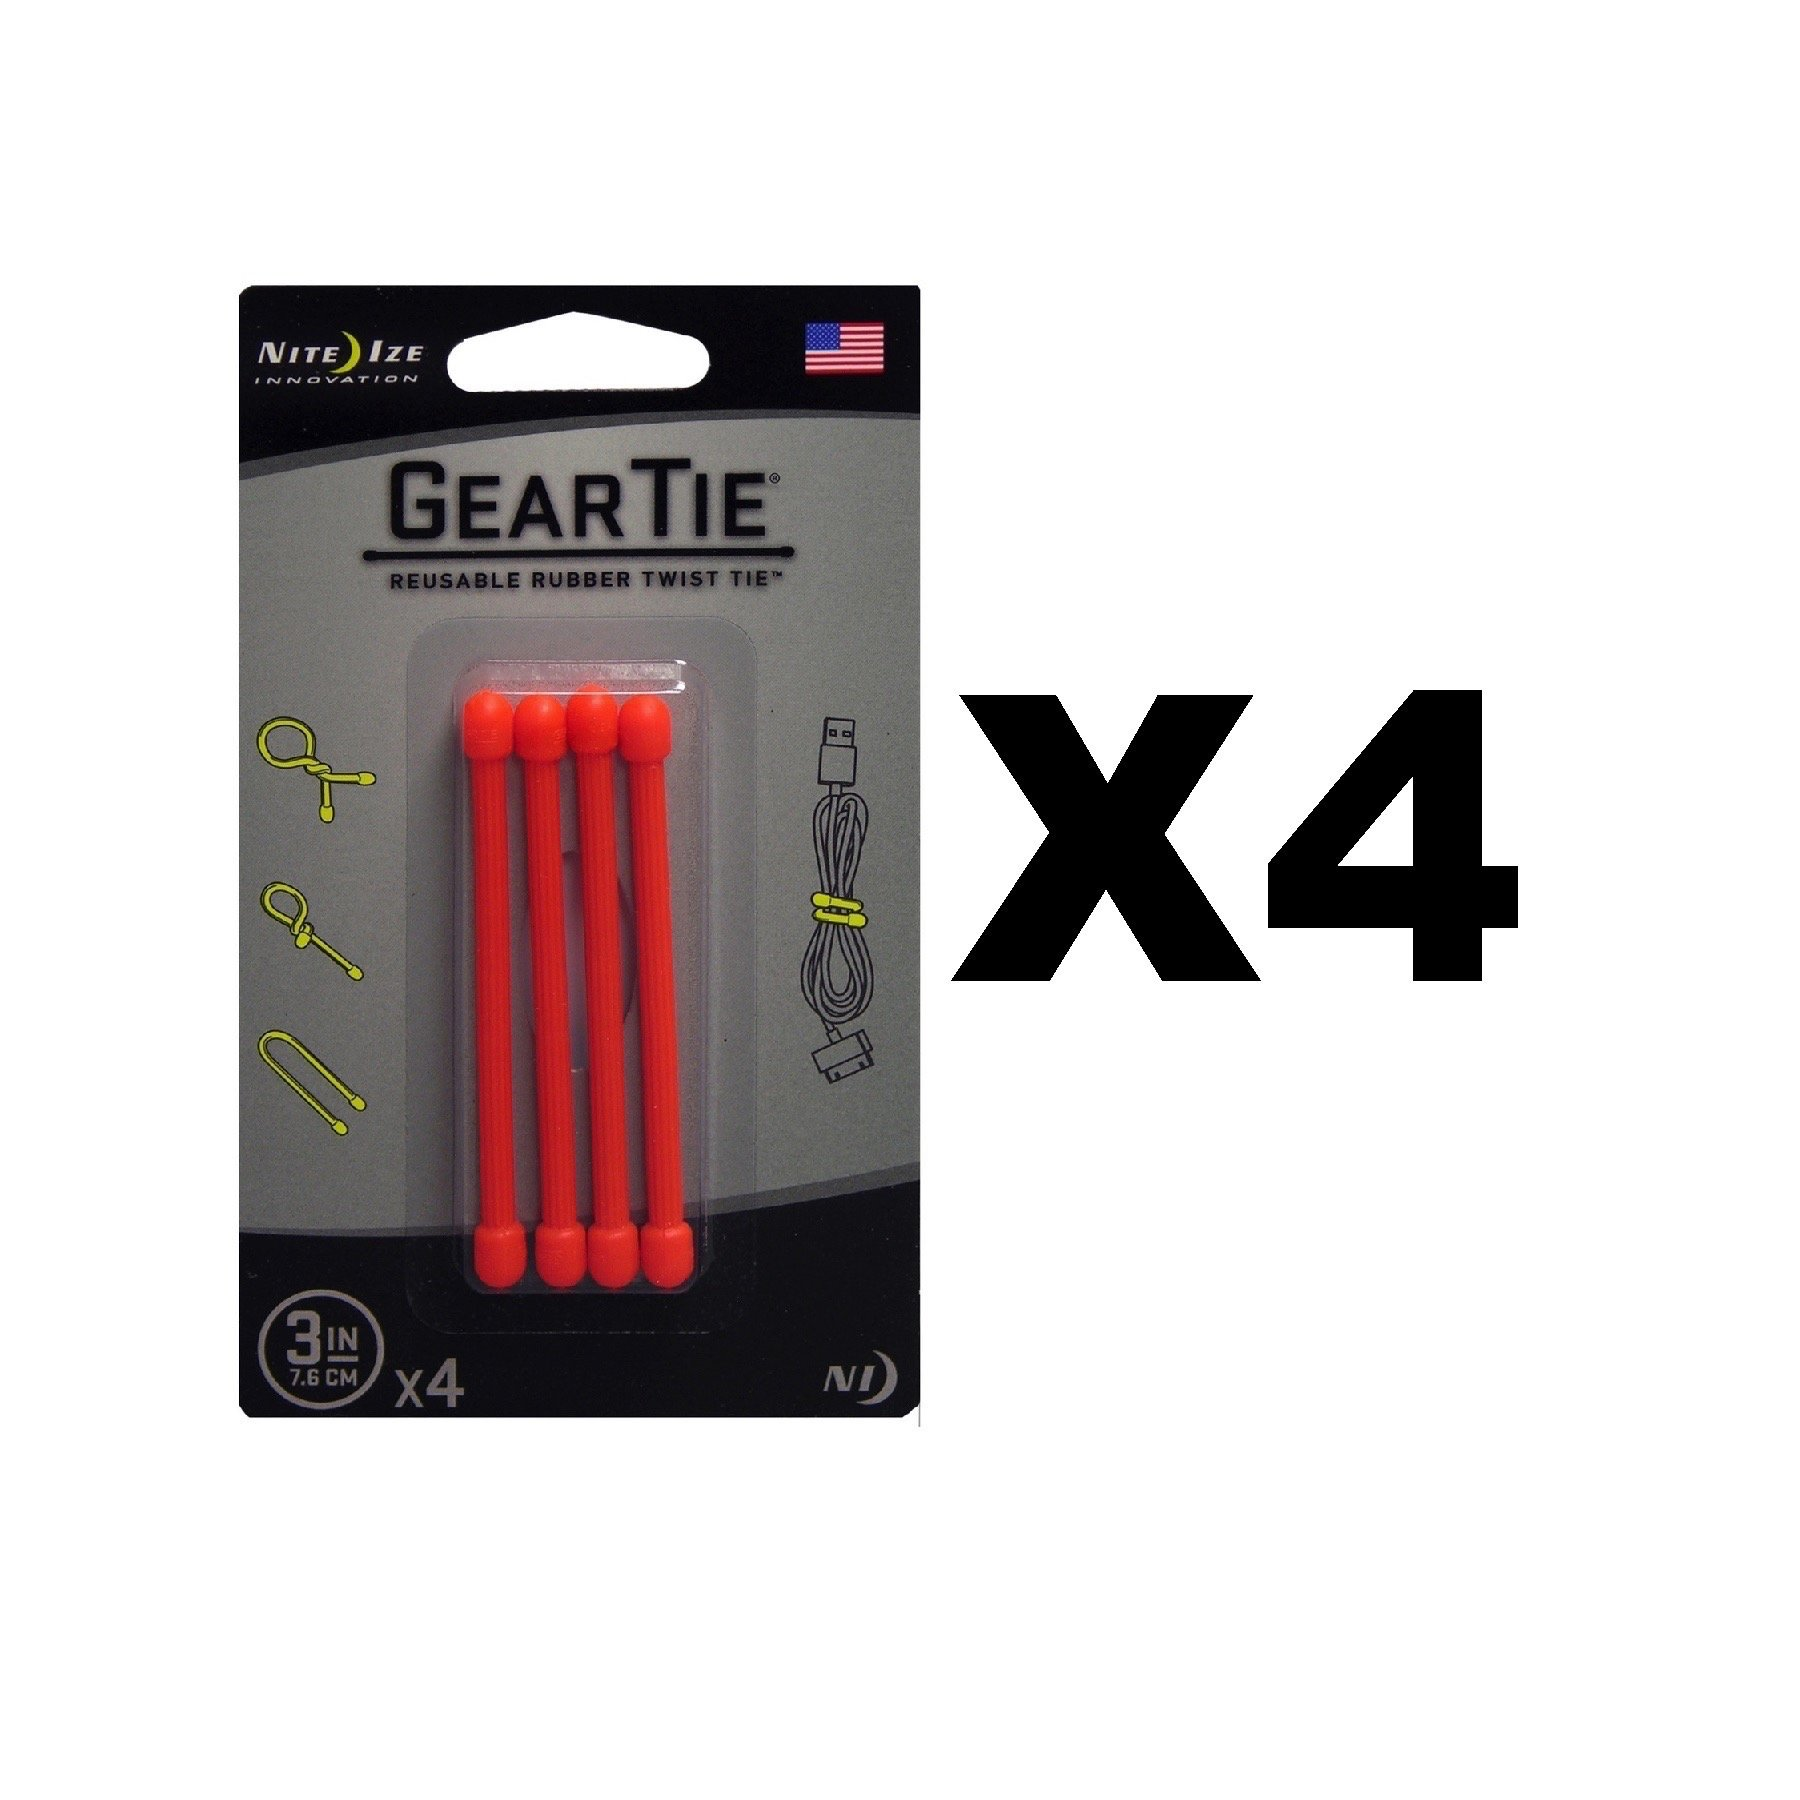 Nite Ize Gear Tie 3'' Bright Orange Reusable Rubber Twisty Ties (4-Pack of 4)